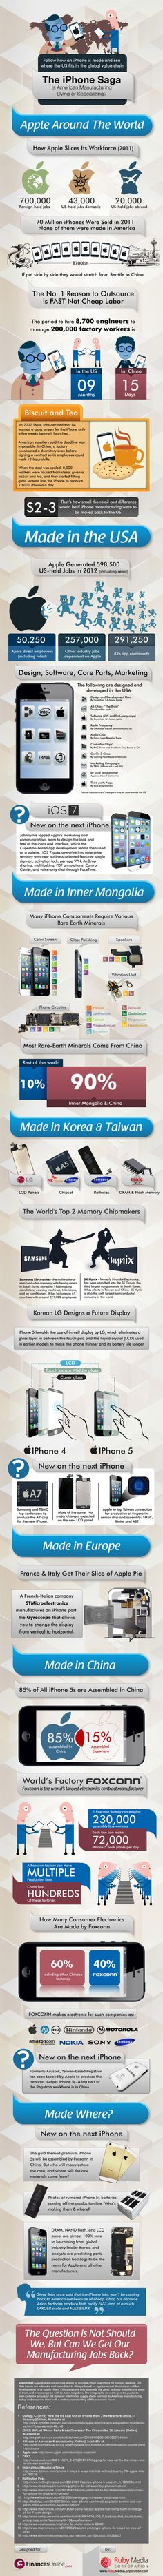 Apple's iPhone: Designed in California but Manufactured Fast All Around the World (Infographic)